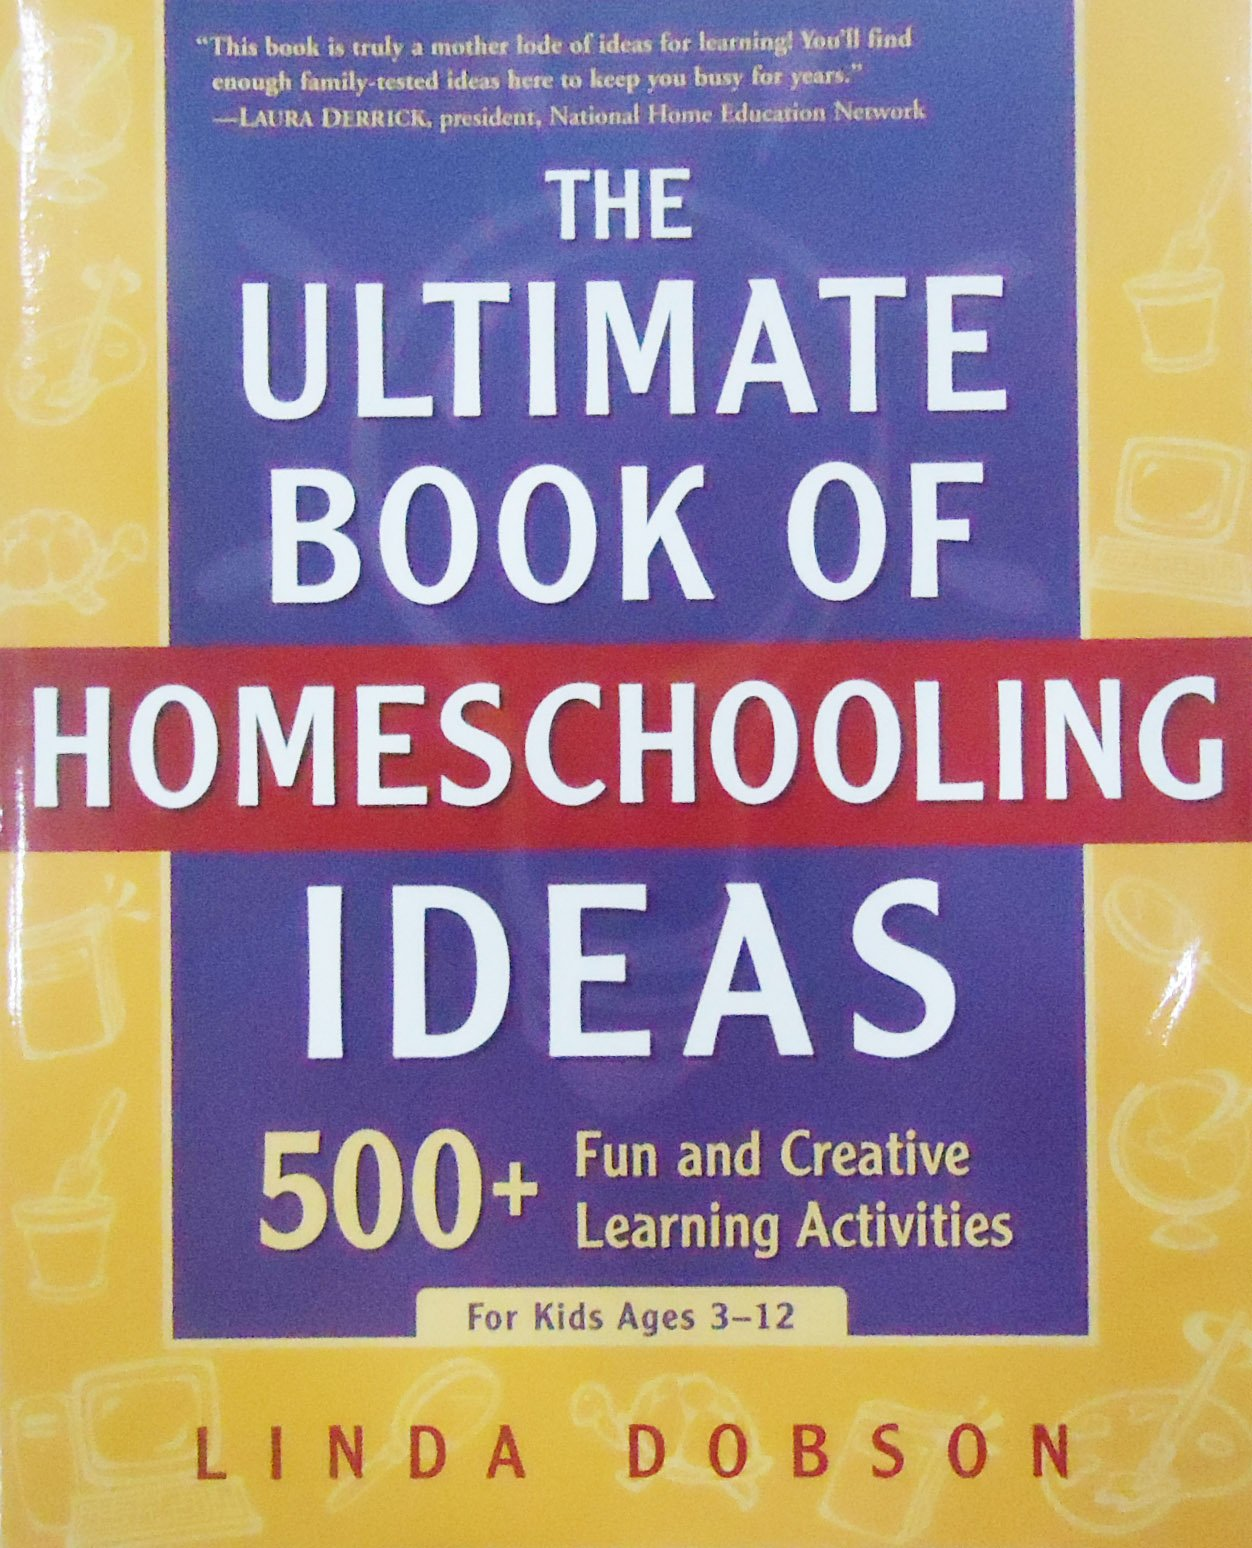 the ultimate book of homeschooling ideas 500 fun and creative